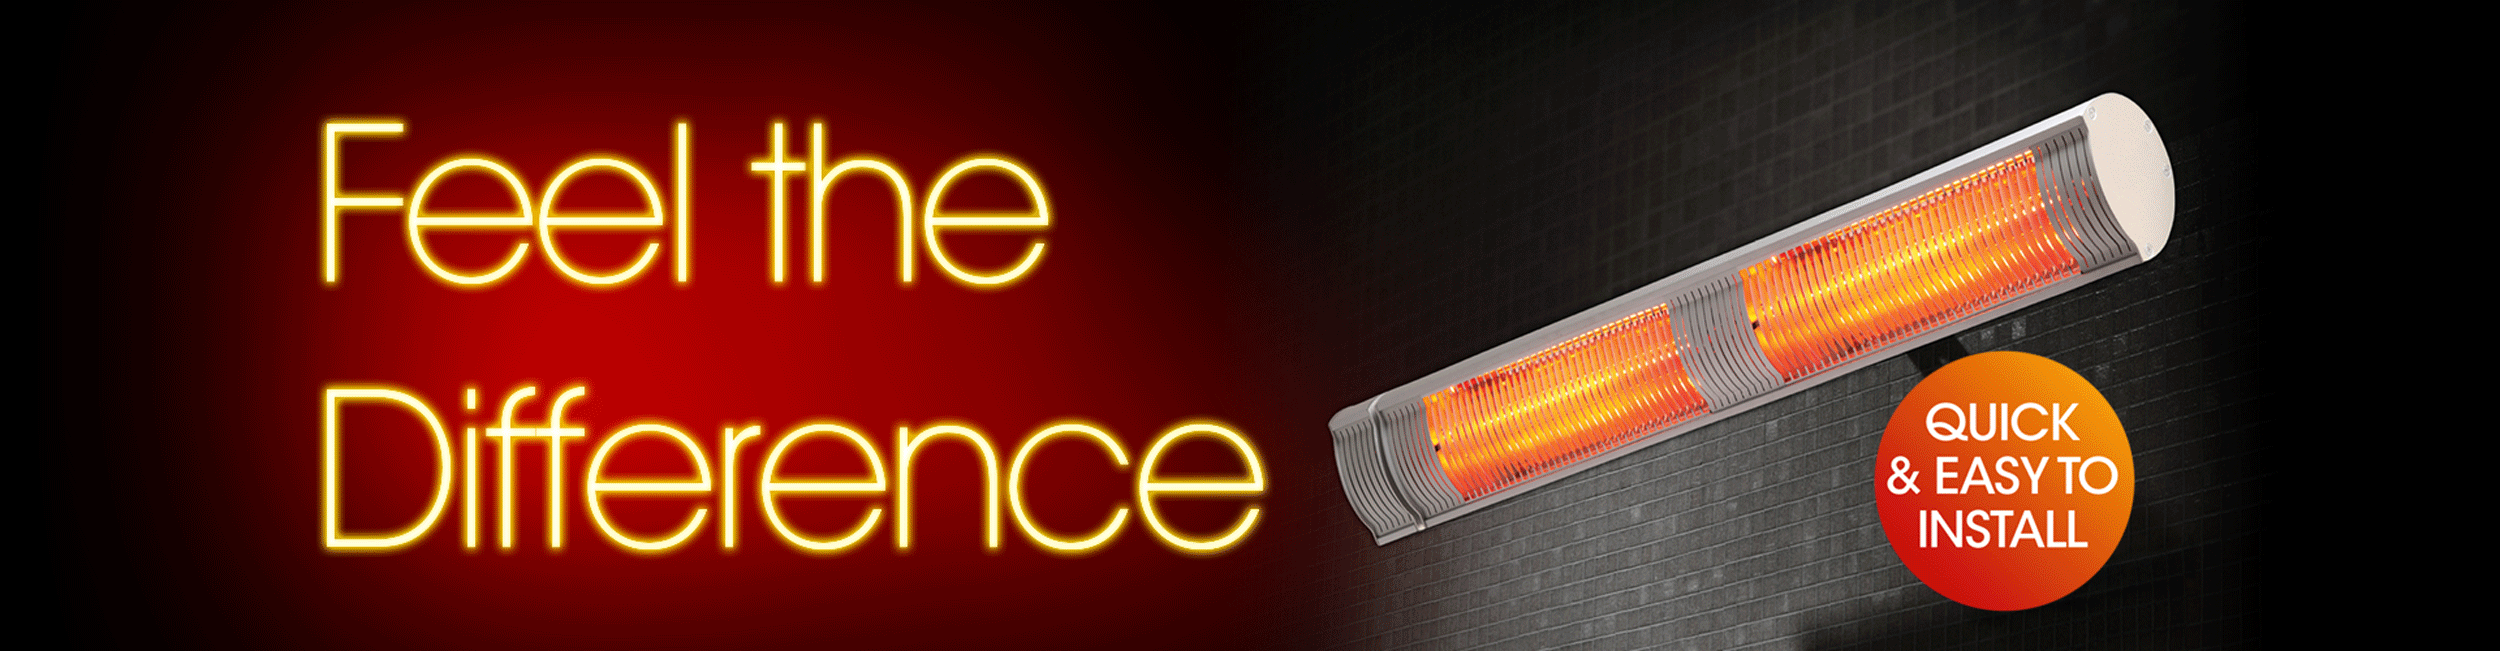 Feel the difference infrared heater heading graphic